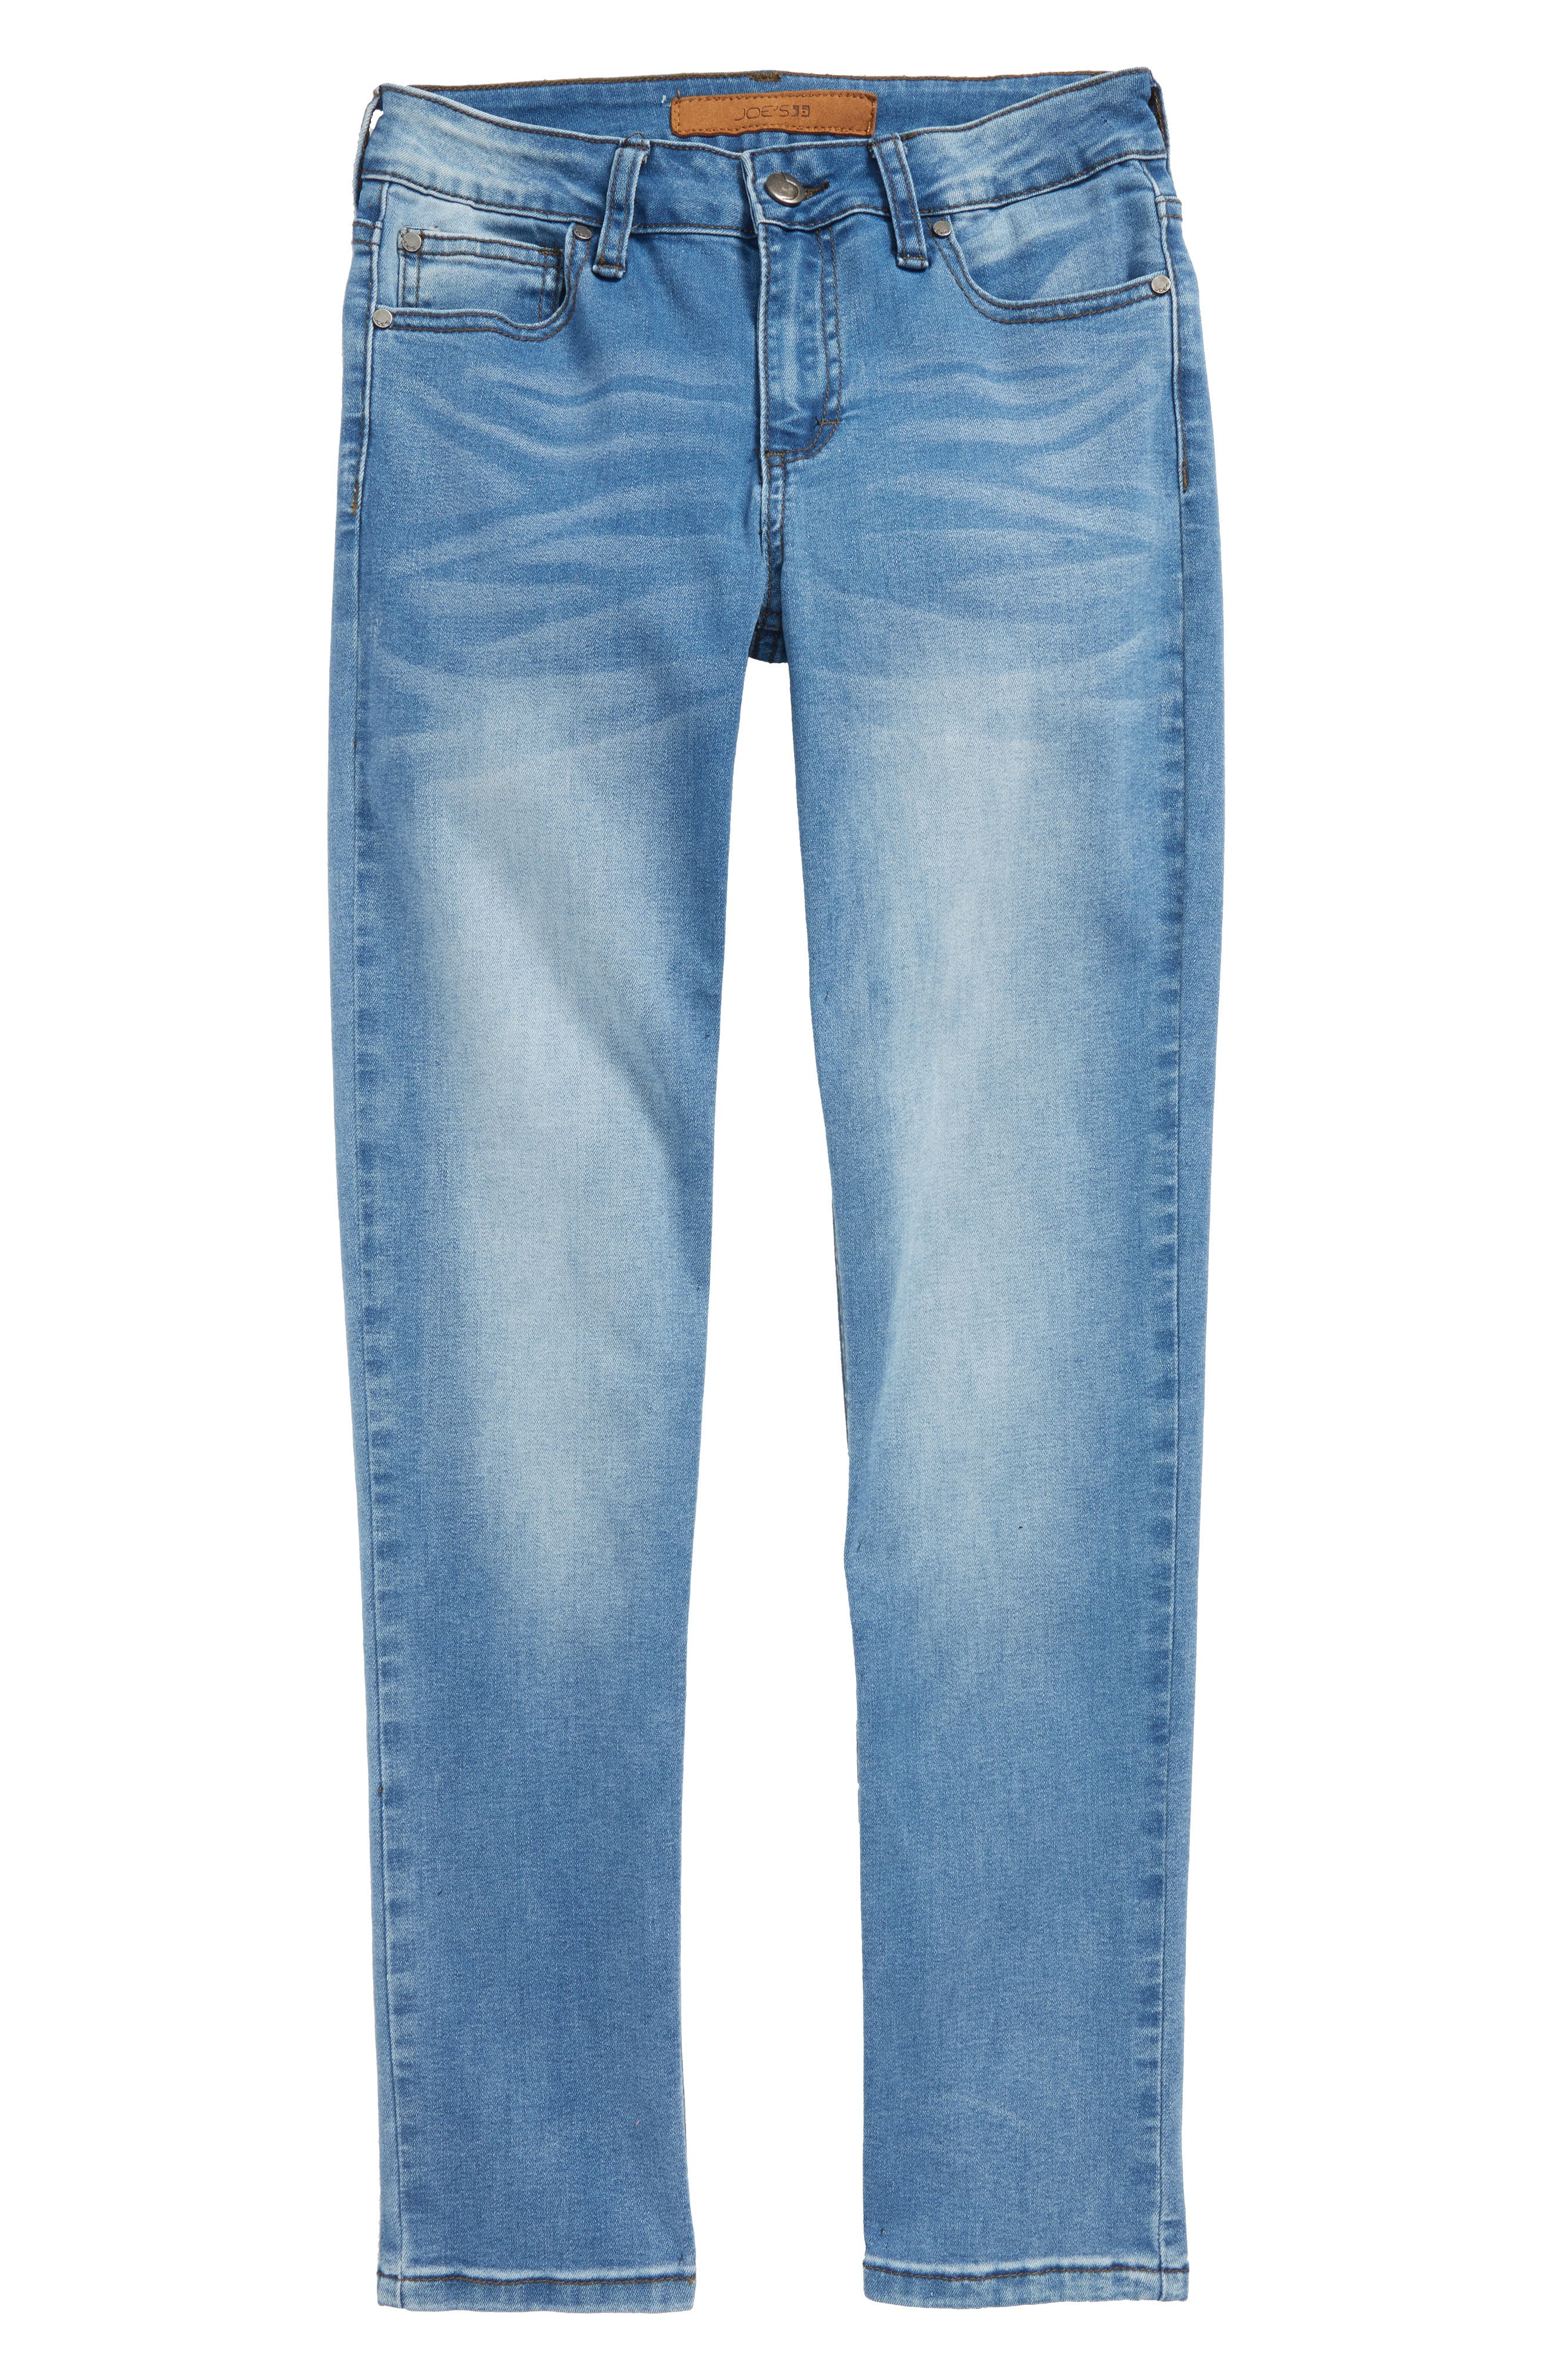 Rad Kinetic Stretch Skinny Fit Jeans,                         Main,                         color, 436